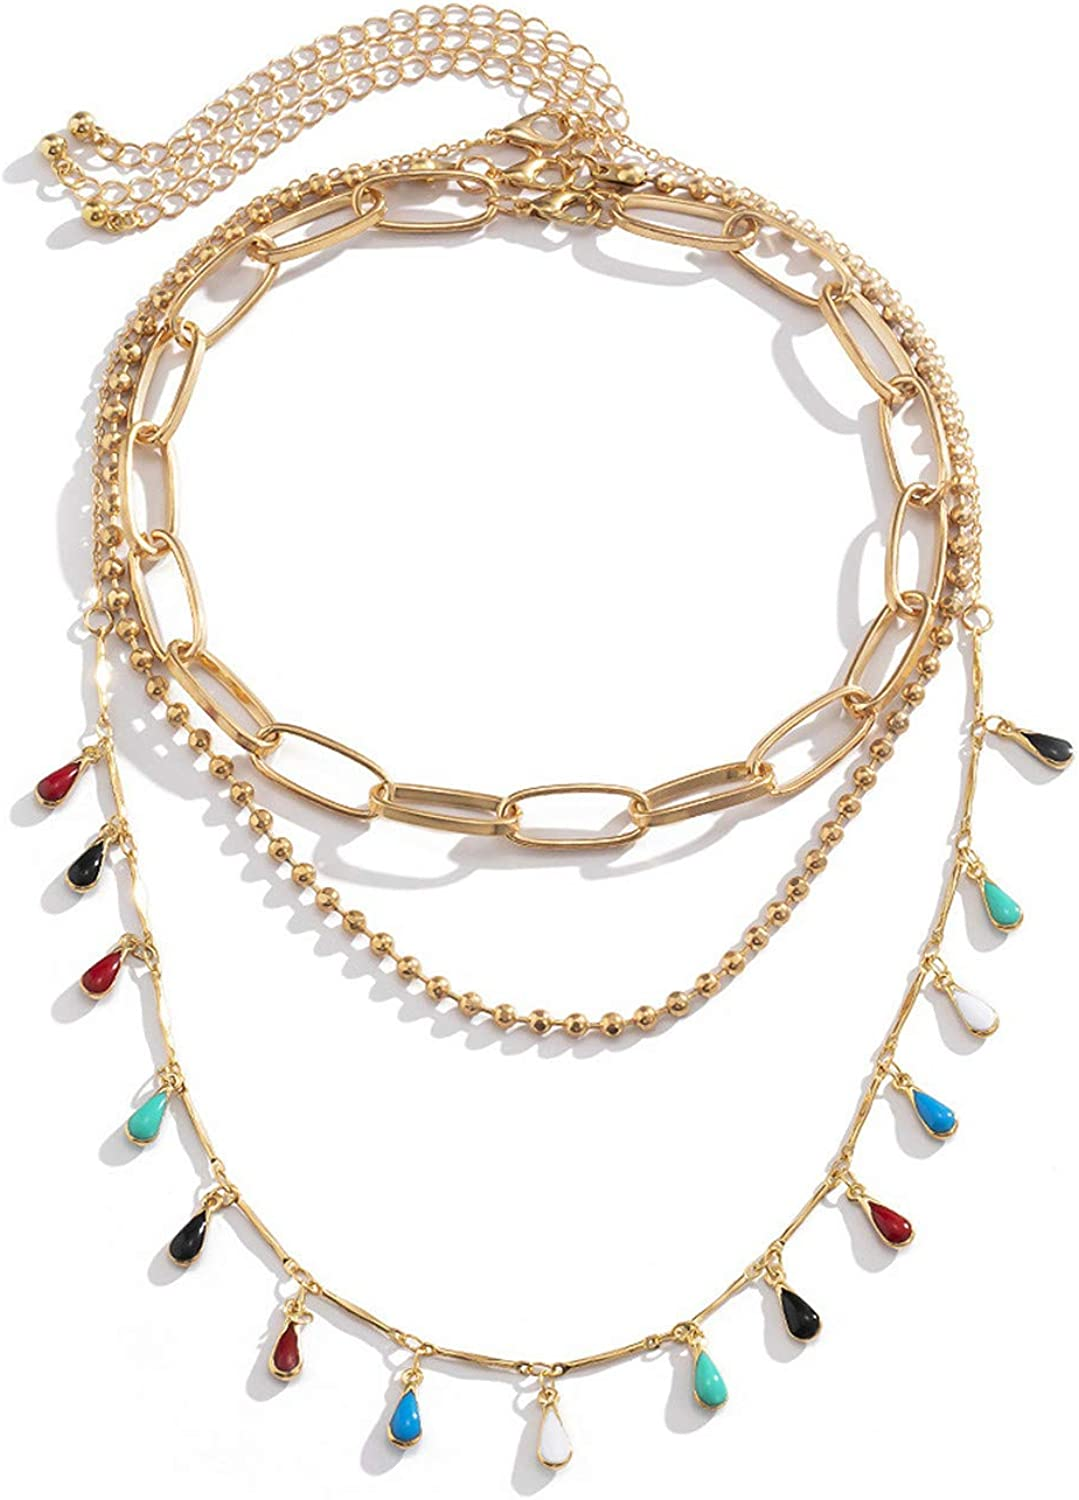 U/K 2-3 Pcs Layered Bohemian Colorful Beaded Choker Necklaces for Women Teen Girls Boho Retro 14K Gold Plated Link Chain Candy Color Beads Tessal Collar Clavicle Necklace Geometric Jewelry